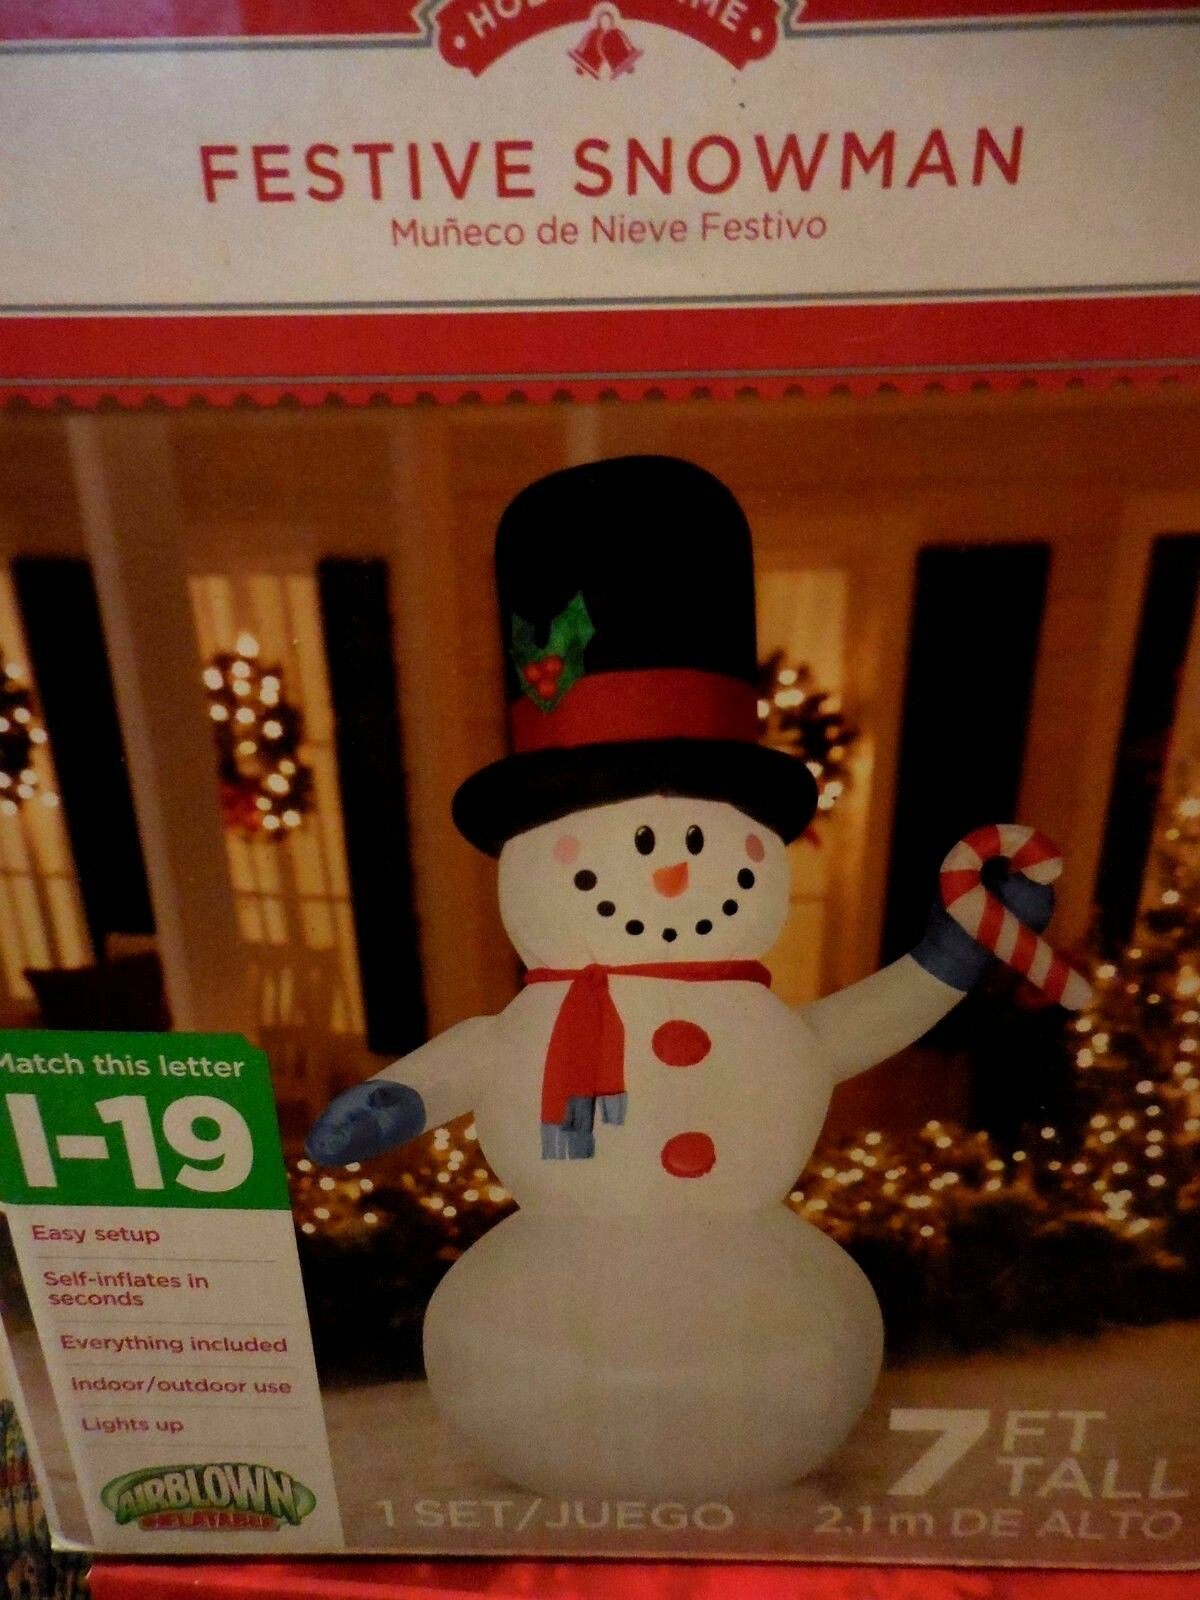 Frosty Snowman Fab 7 Ft. Outdoor Inflatable Christmas Lawn Lighted